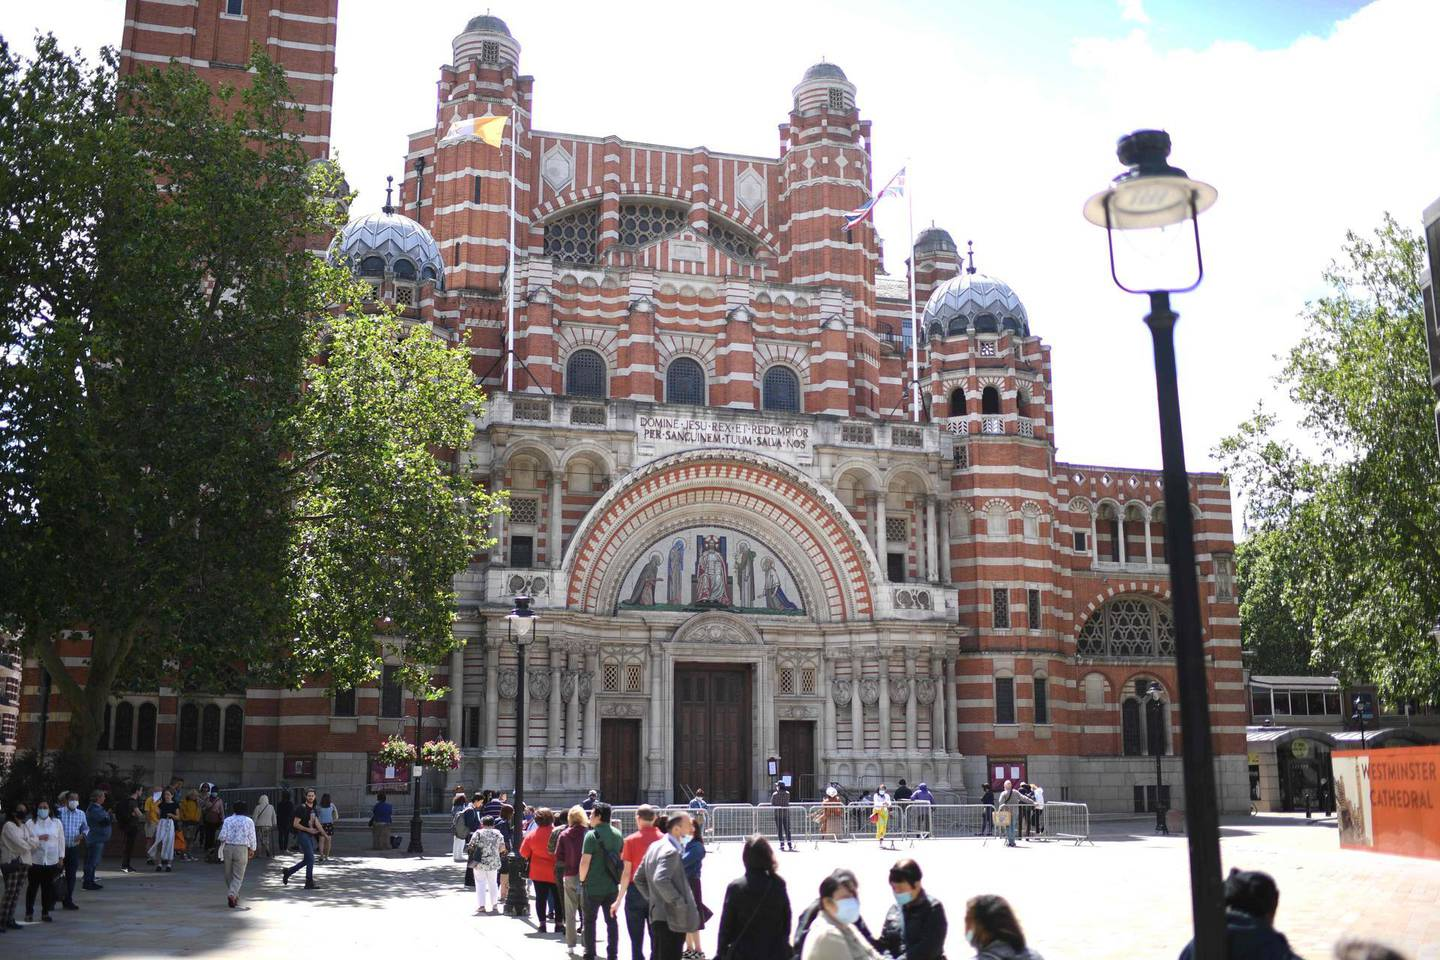 Worshippers queue to enter Westminster Cathedral in London on July 5, 2020 for Sunday Mass on the first Sunday since coronavirus lockdown restrictions were eased to allow for communal prayer.  The Christian devotee is a regular at Westminster Cathedral and has been attending services with her statue of Jesus sitting atop the globe for 26 years. Churches opened their doors for Sunday Mass for the first time in months since the coronavirus restrictions were eased in England.  / AFP / DANIEL LEAL-OLIVAS